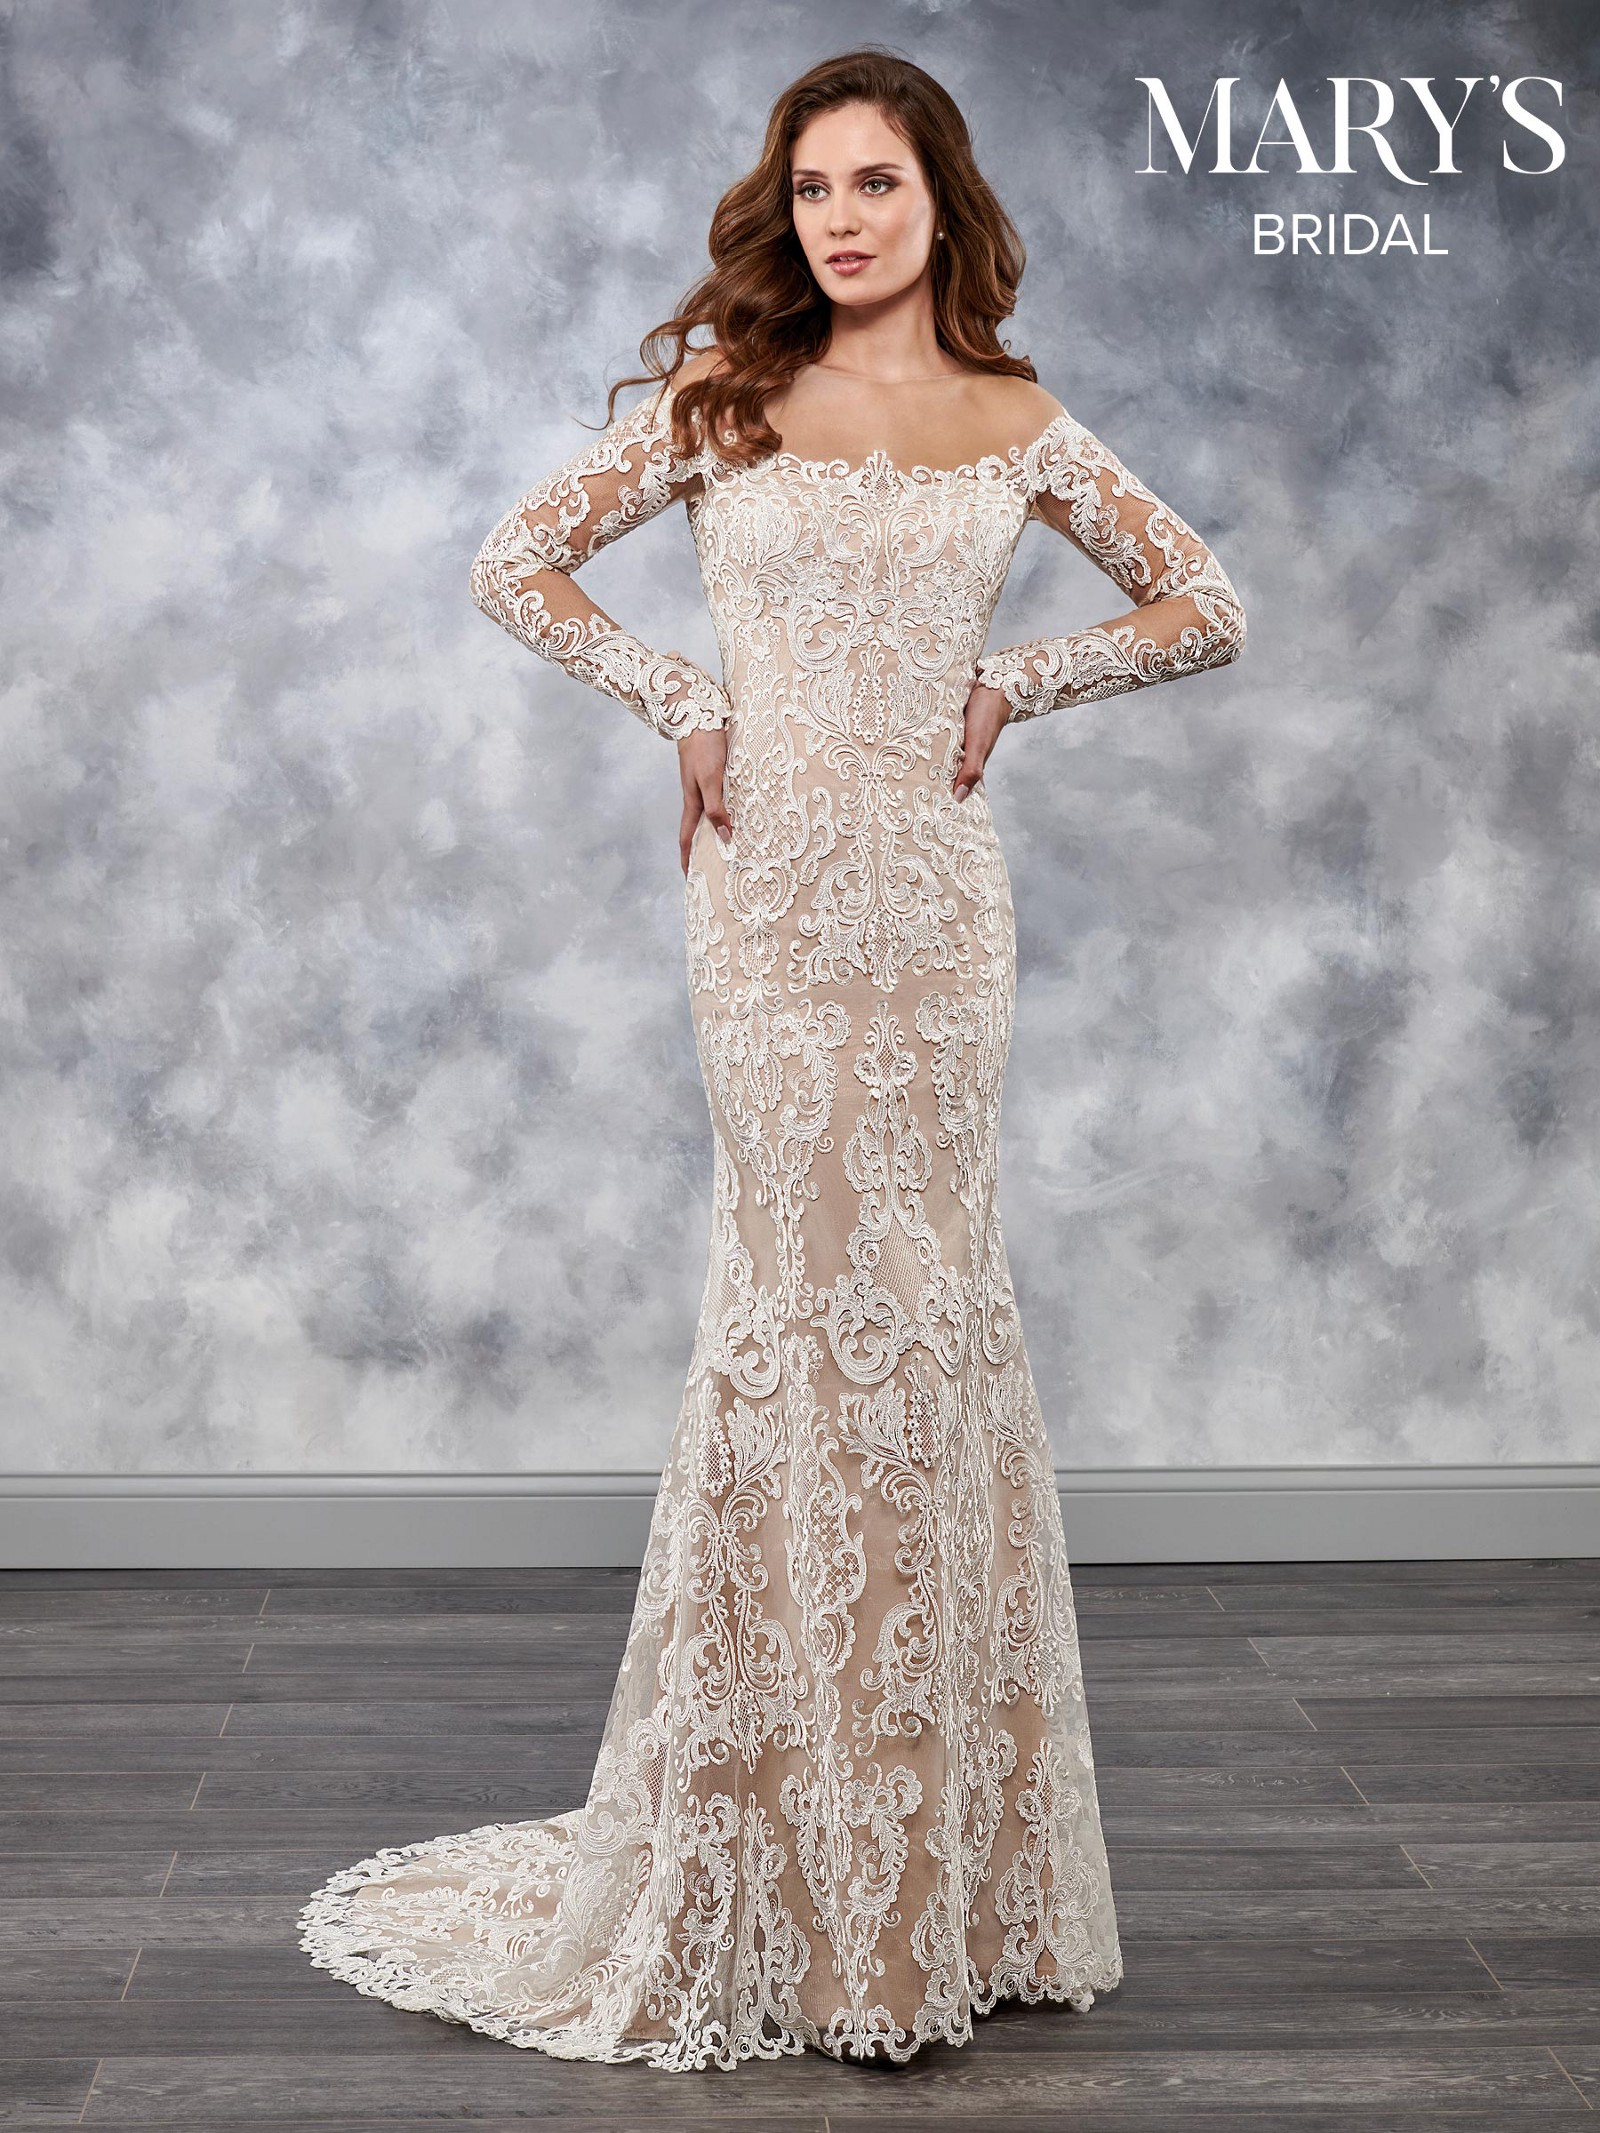 Classic Bridal gowns for brides to look elegant and breathtaking